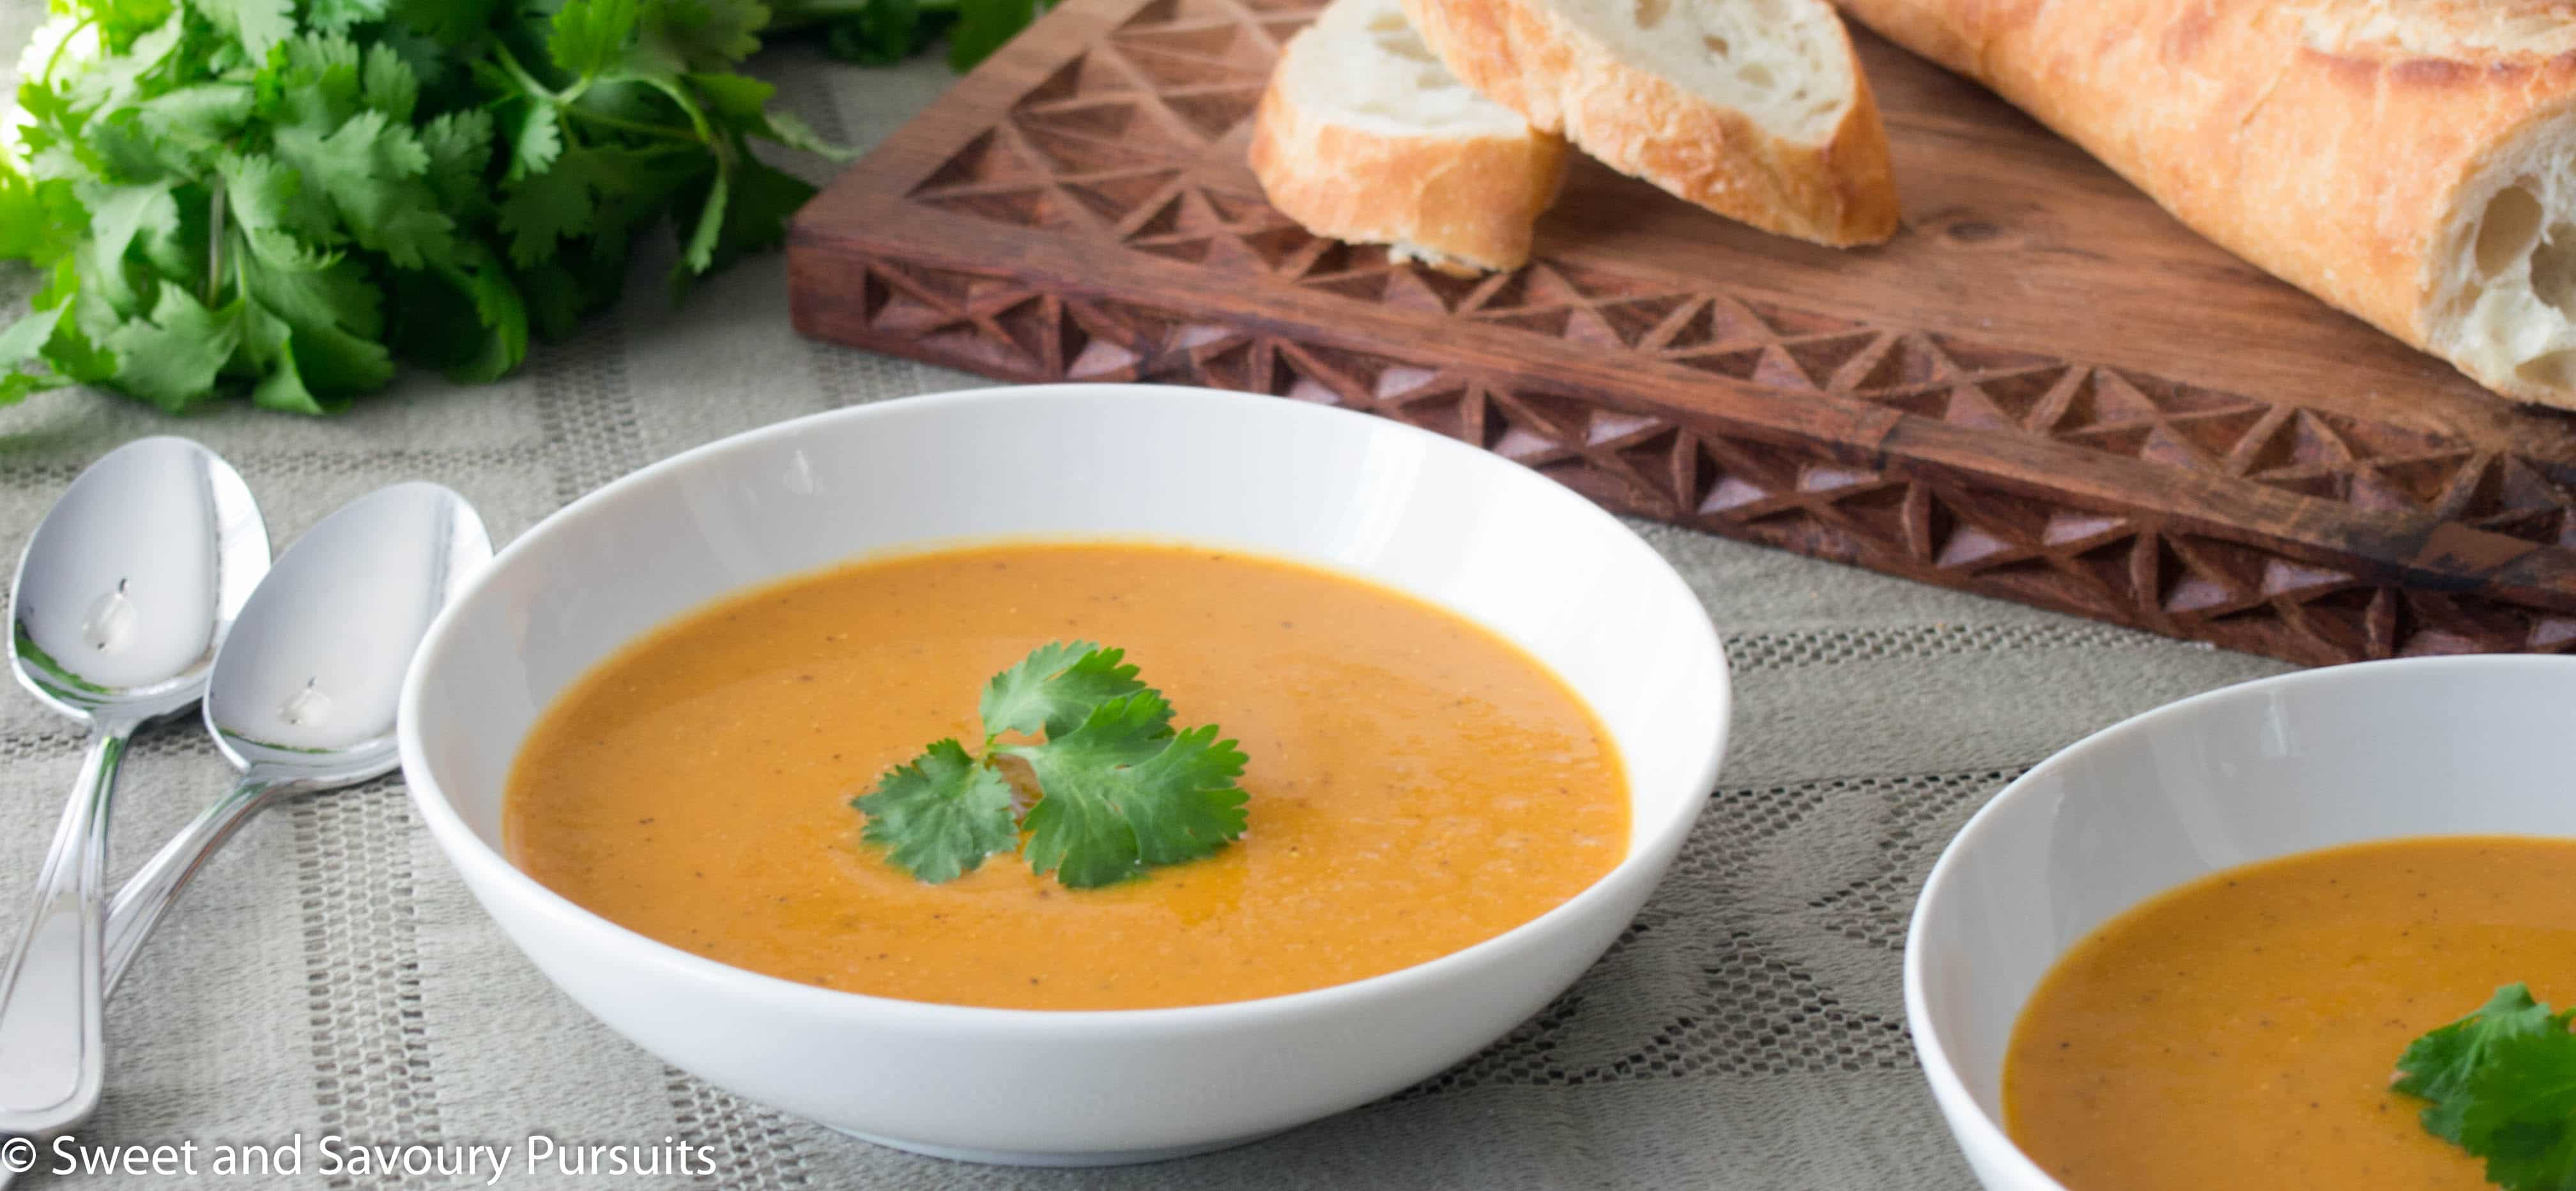 Red Lentil and Cauliflower Soup in white bowls with bread on the side.